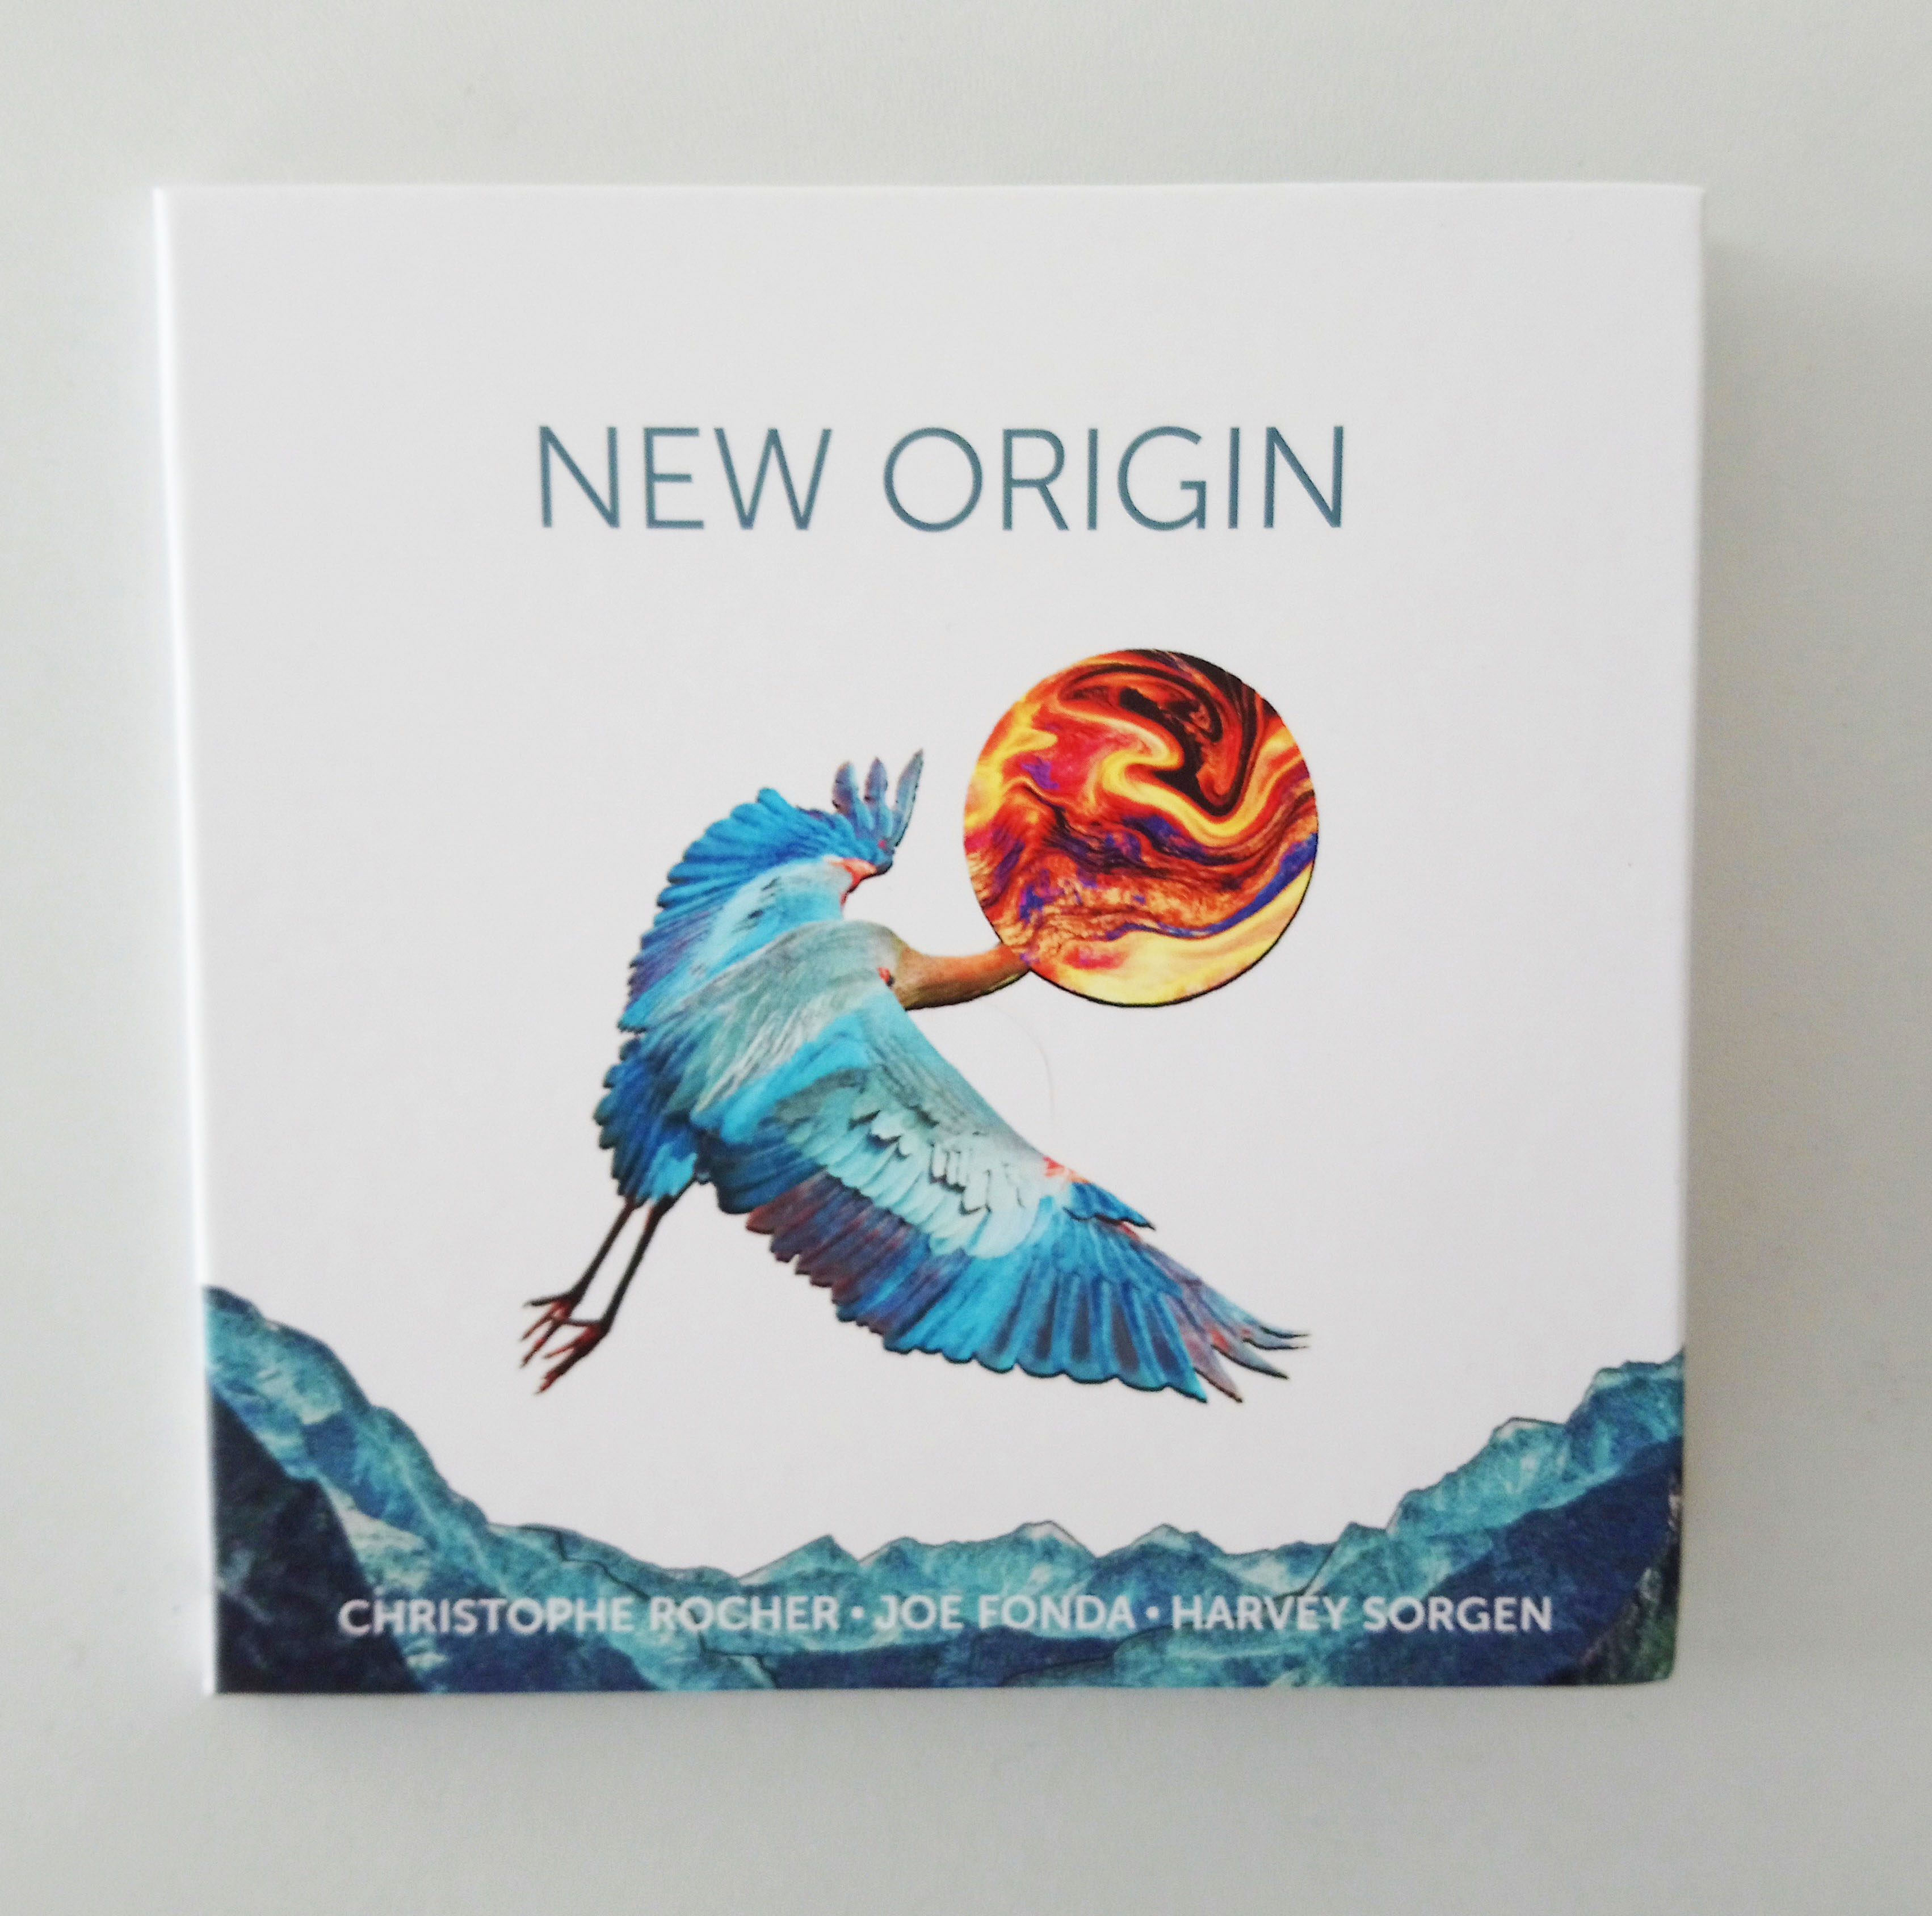 NEW ORIGIN, l'album